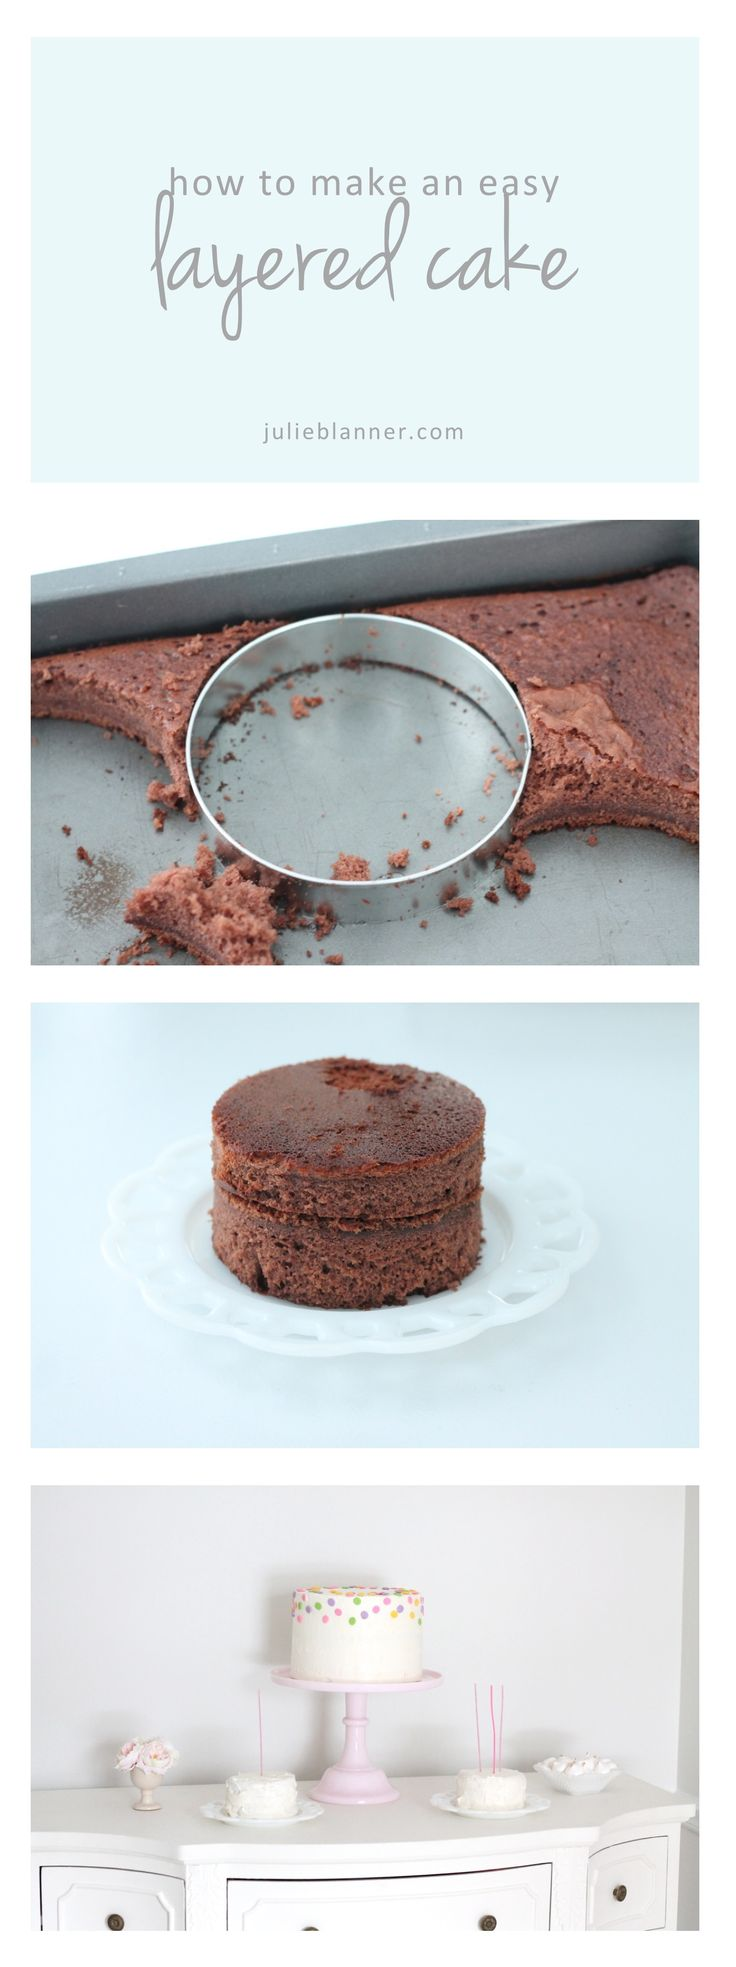 Click here to learn how to make an easy layered cake - a step by step tutorial for beginners